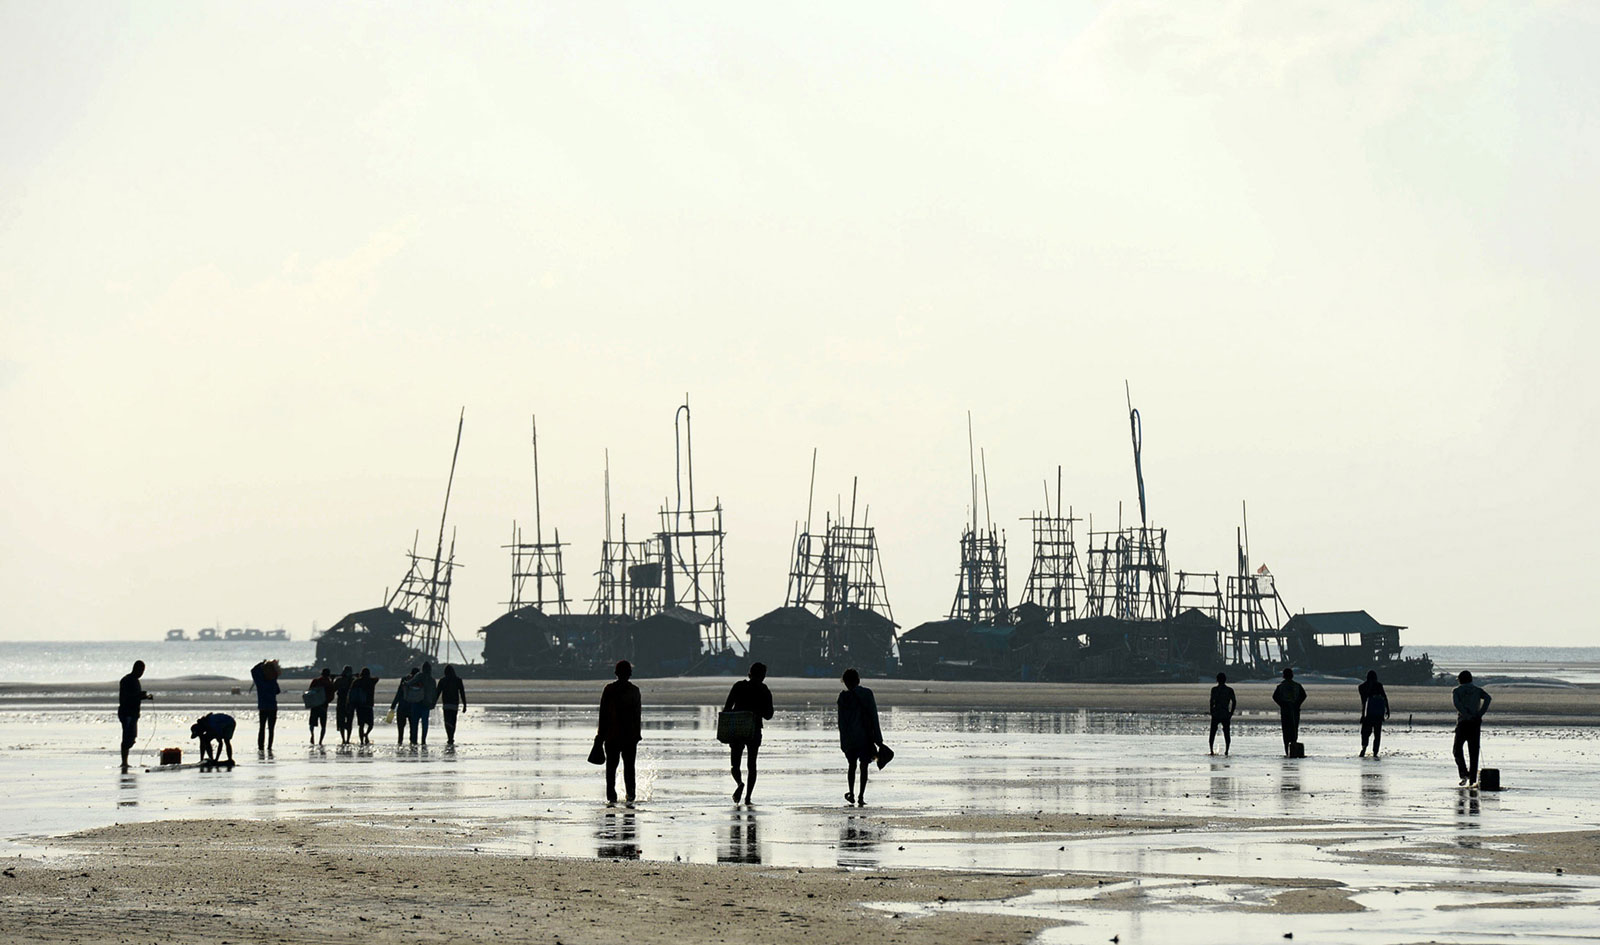 Workers walk toward wooden dredging rafts on the beach off the coast of Bangka Island, Indonesia